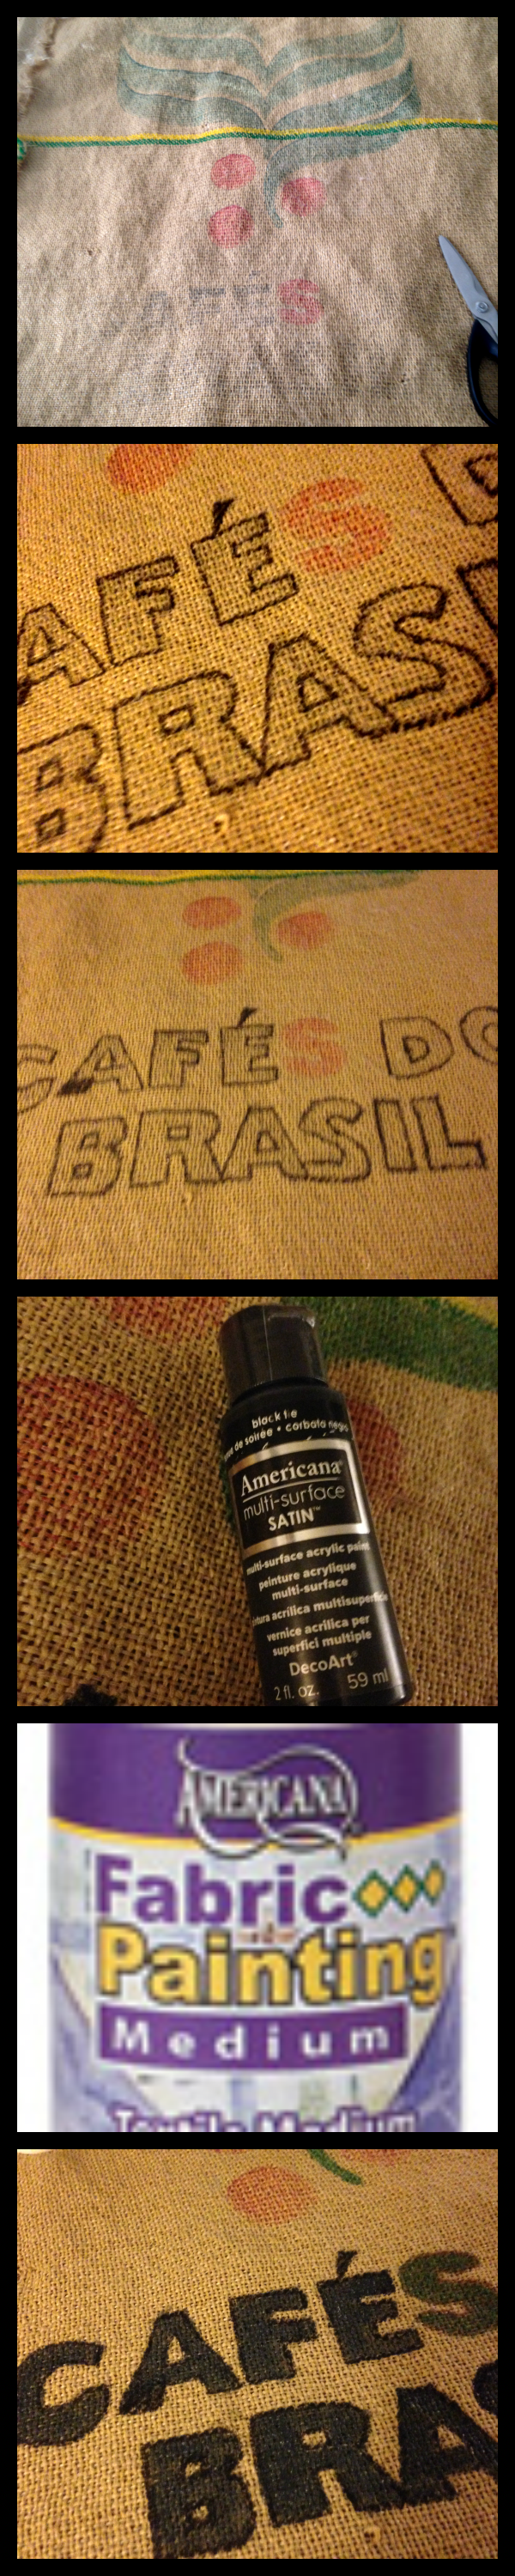 Steps to paint in cafes do brasil on burlap coffee bag savingmorethanme.com #diy